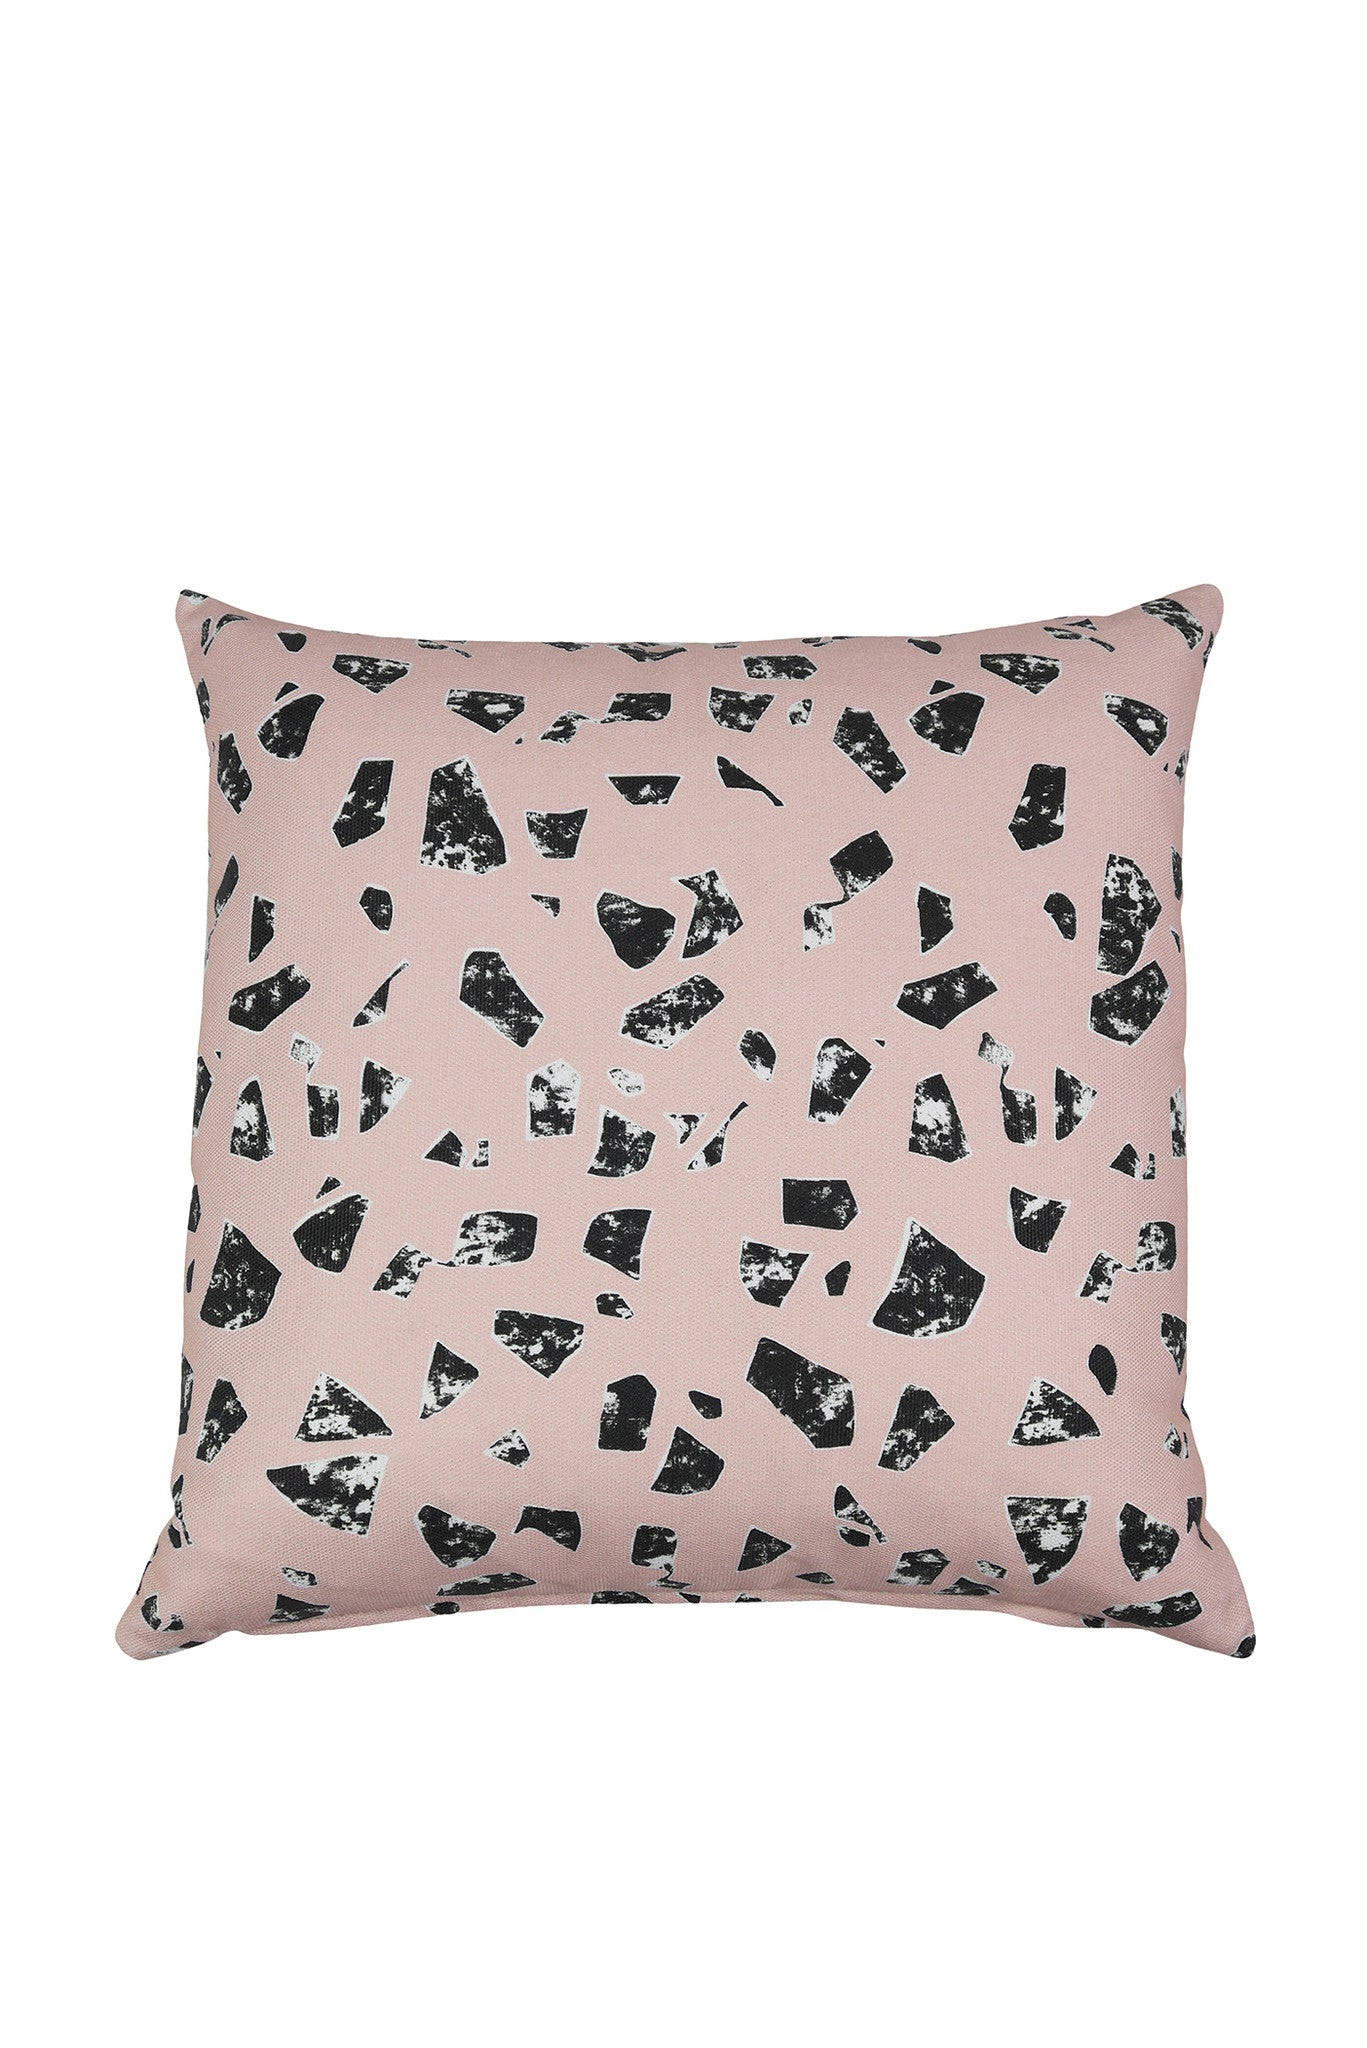 CHIPS Cushion - Peach